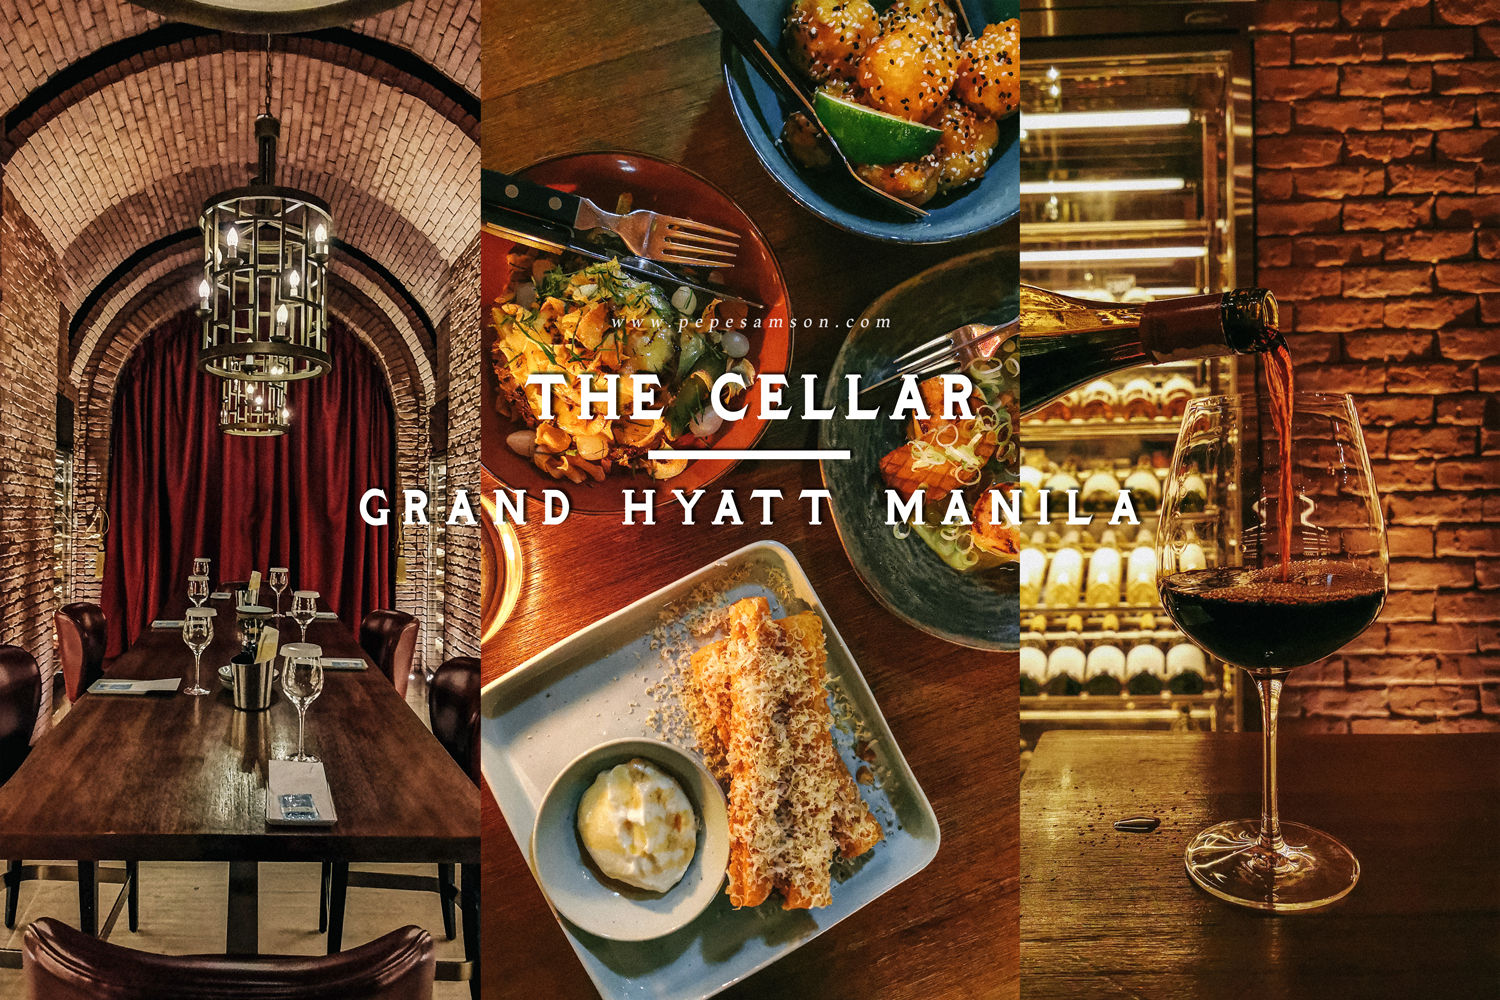 Dining Out in 2021: My Thoughts on The Cellar at the Grand Hyatt Manila